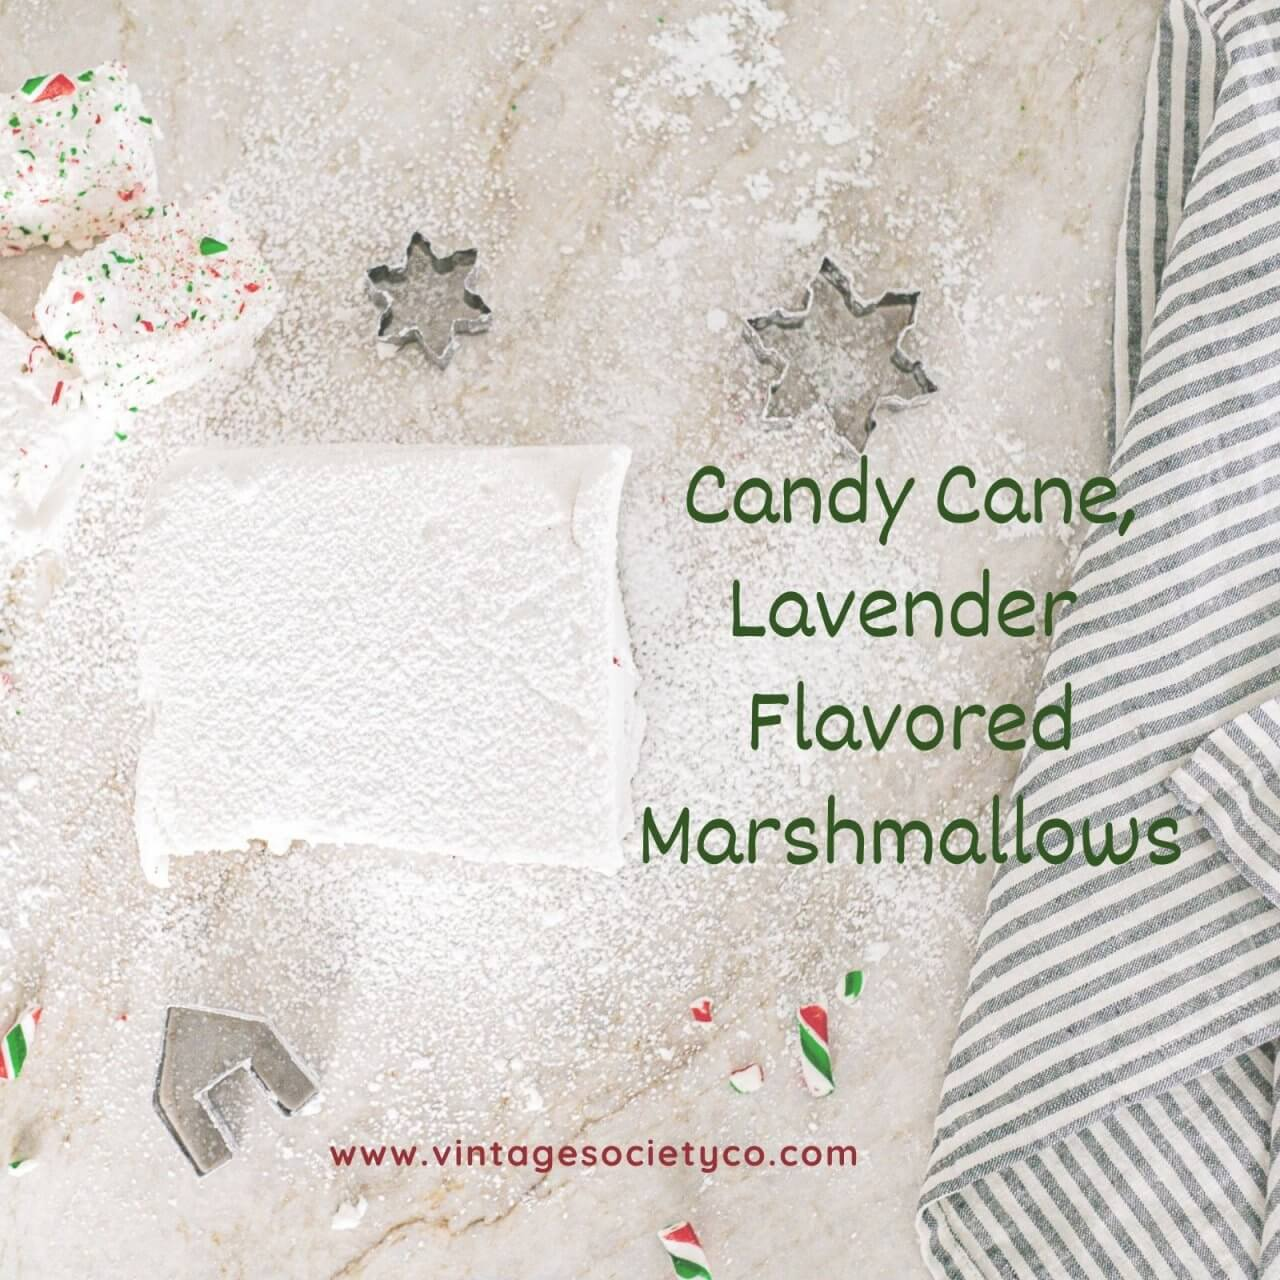 Lavender Flavored Marshmallows